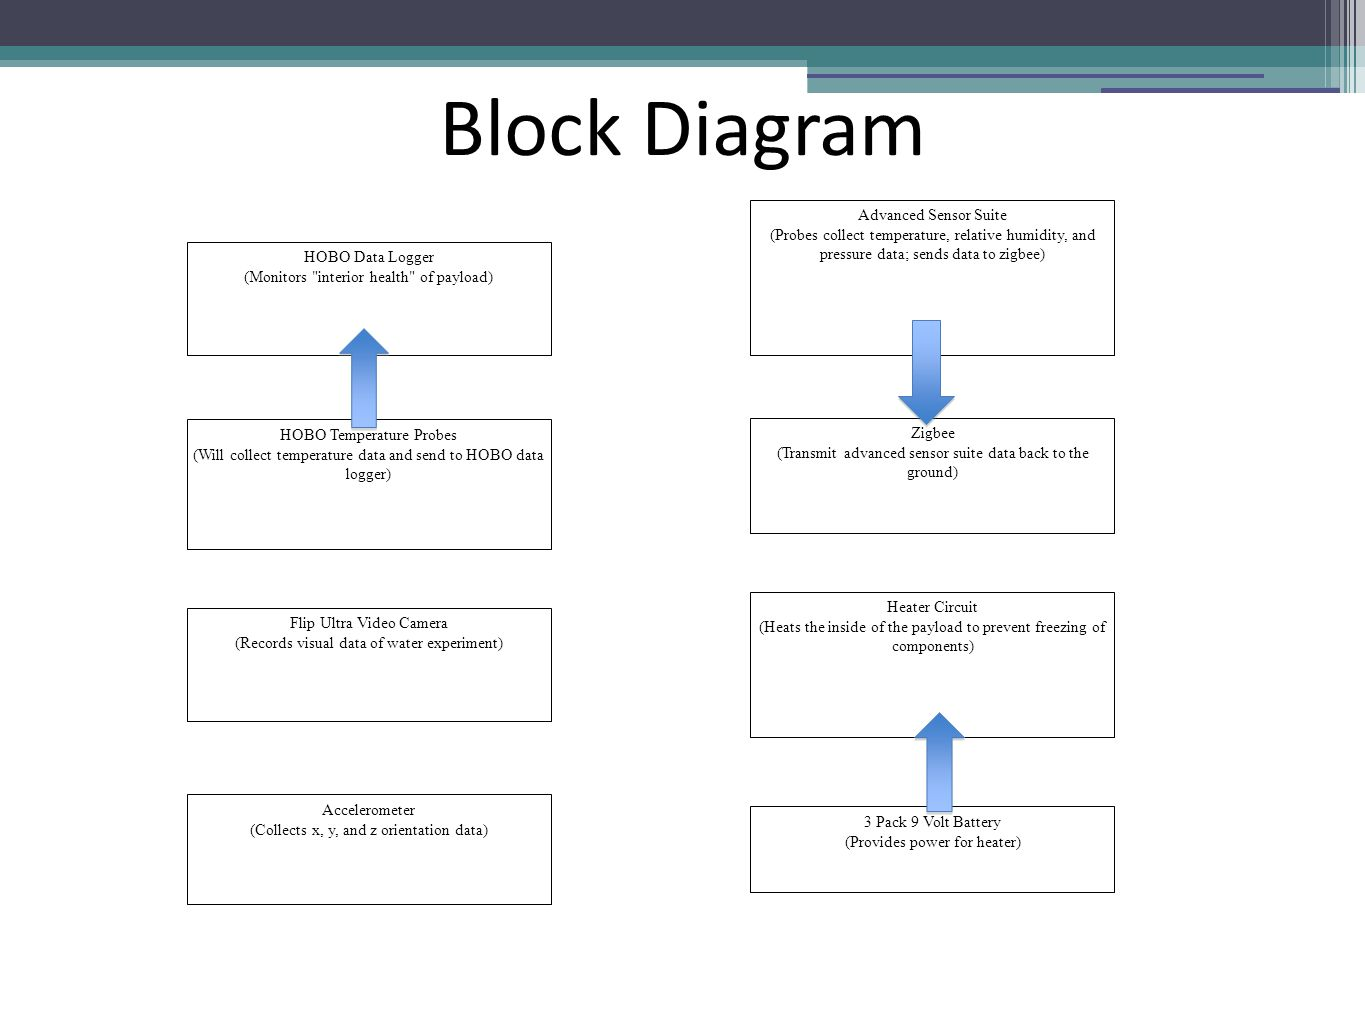 Block Diagram HOBO Data Logger (Monitors interior health of payload) HOBO Temperature Probes (Will collect temperature data and send to HOBO data logger) Flip Ultra Video Camera (Records visual data of water experiment) Zigbee (Transmit advanced sensor suite data back to the ground) Advanced Sensor Suite (Probes collect temperature, relative humidity, and pressure data; sends data to zigbee) 3 Pack 9 Volt Battery (Provides power for heater) Heater Circuit (Heats the inside of the payload to prevent freezing of components) Accelerometer (Collects x, y, and z orientation data)